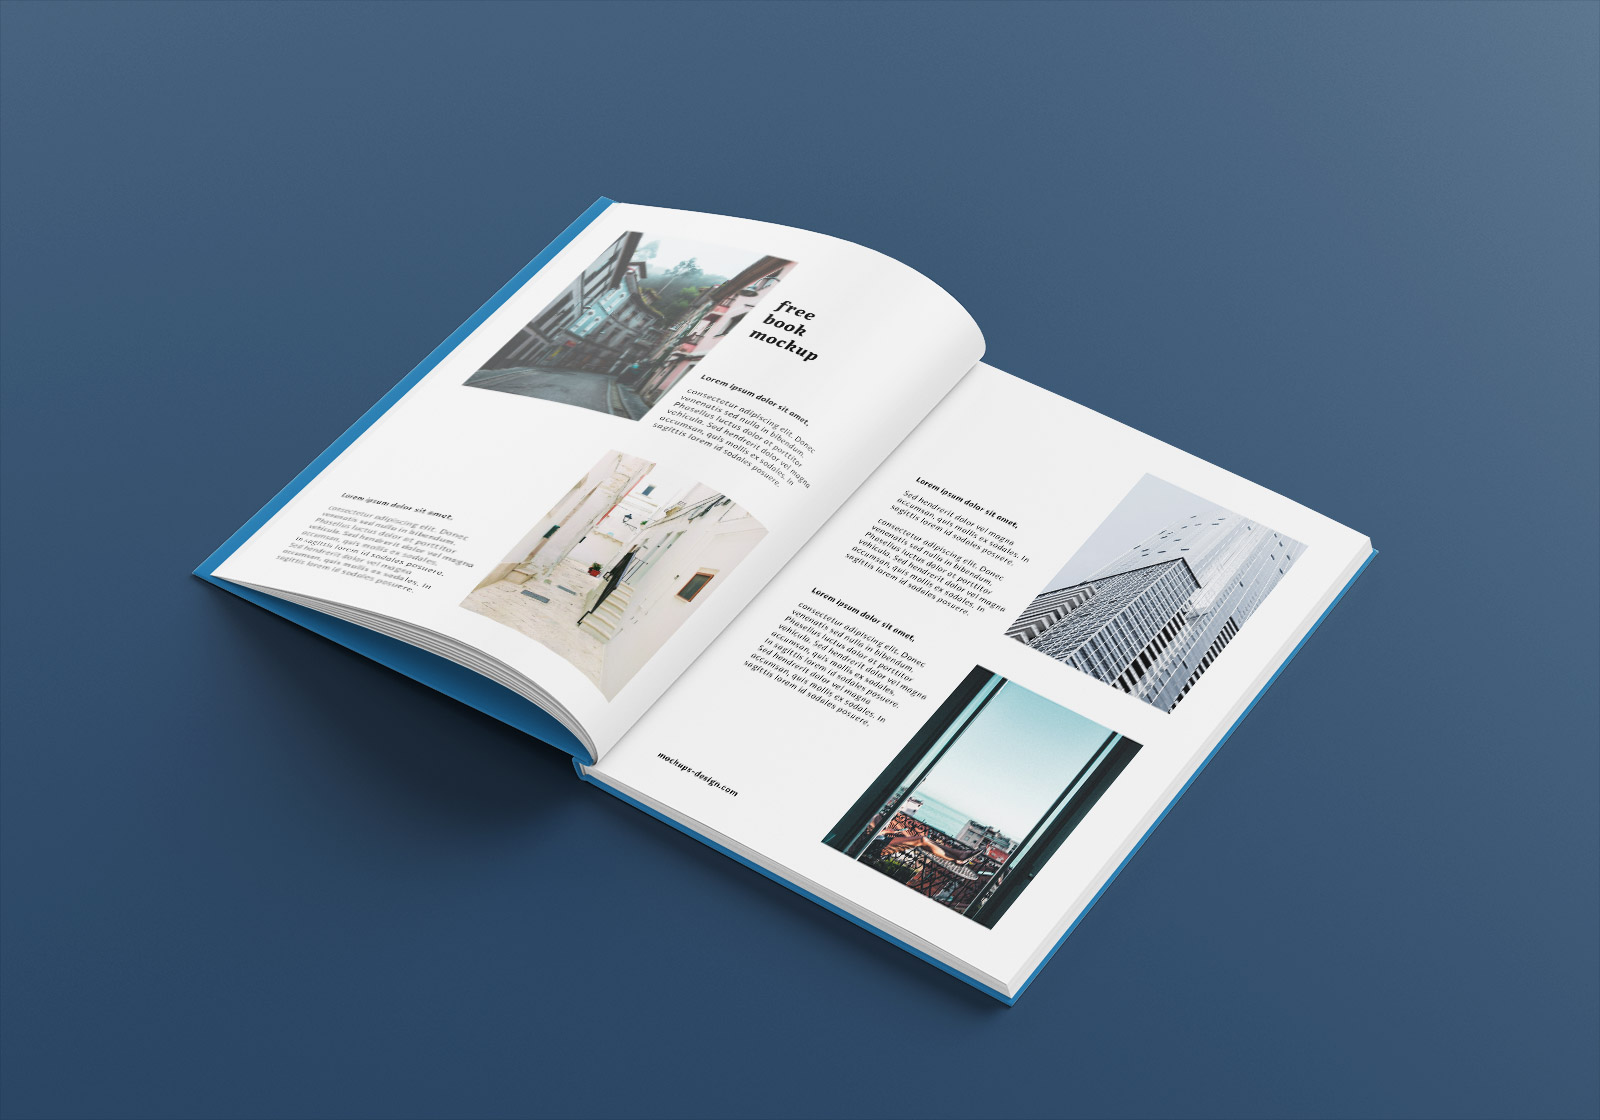 Free A4 Hardcover Magazine Book Mockup PSD Set (5)